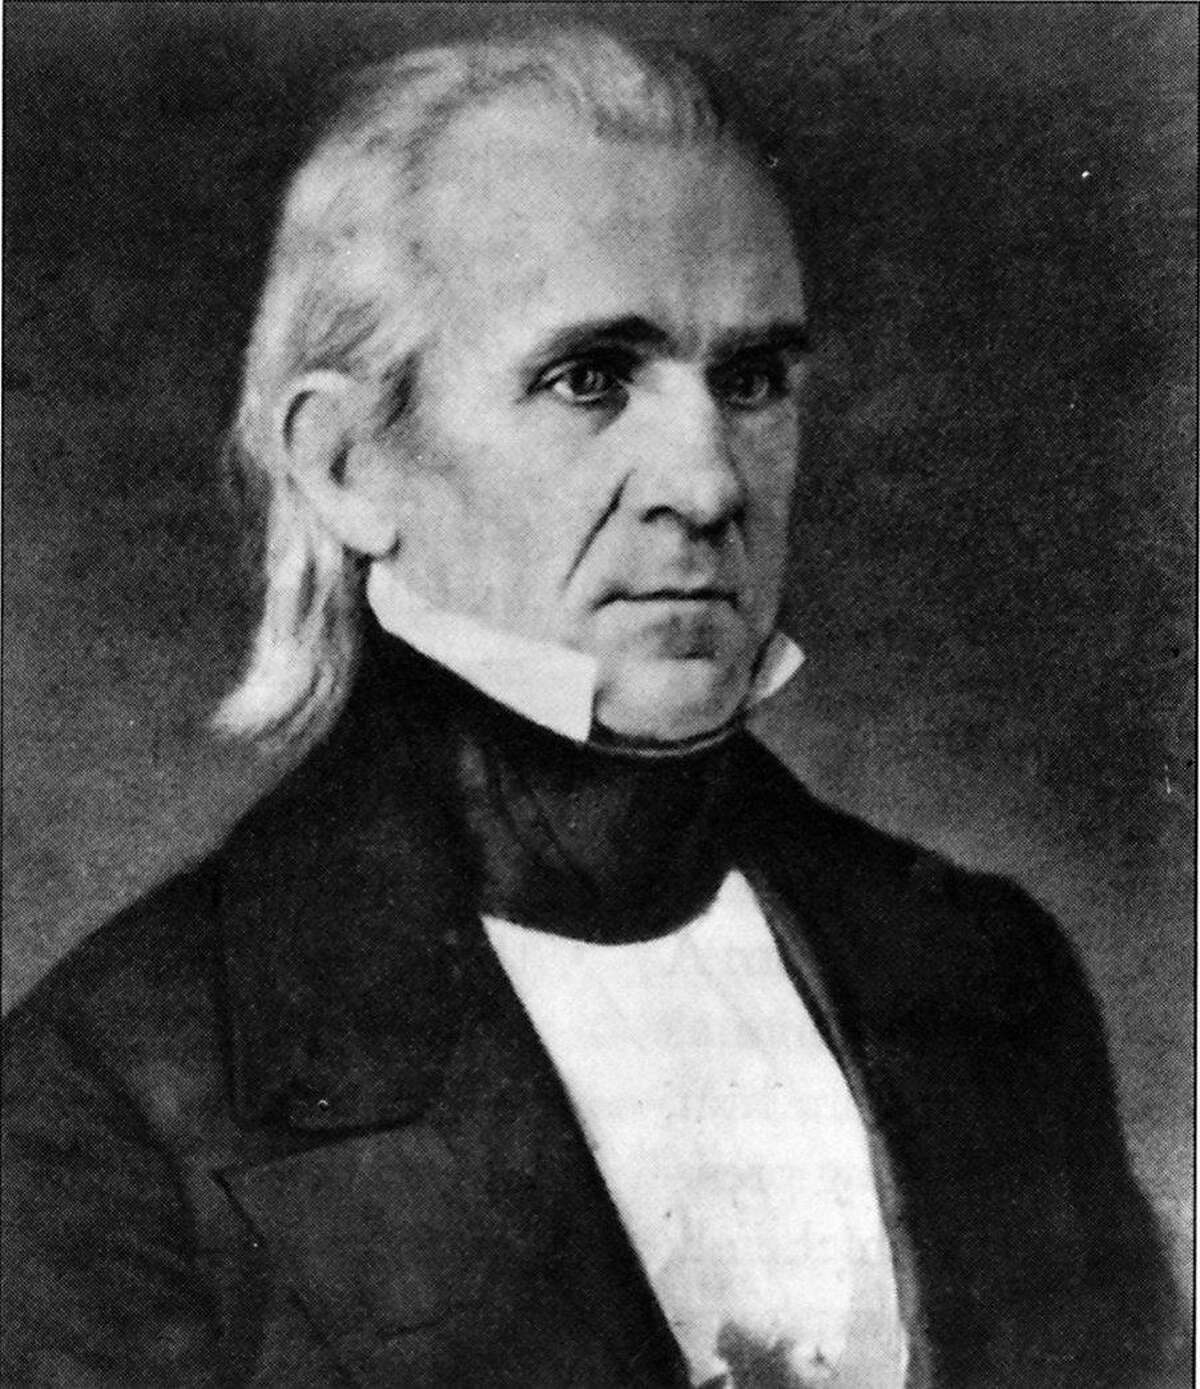 former president james k. polk Ran on: 07-17-2005 Ran on: 03-27-2006